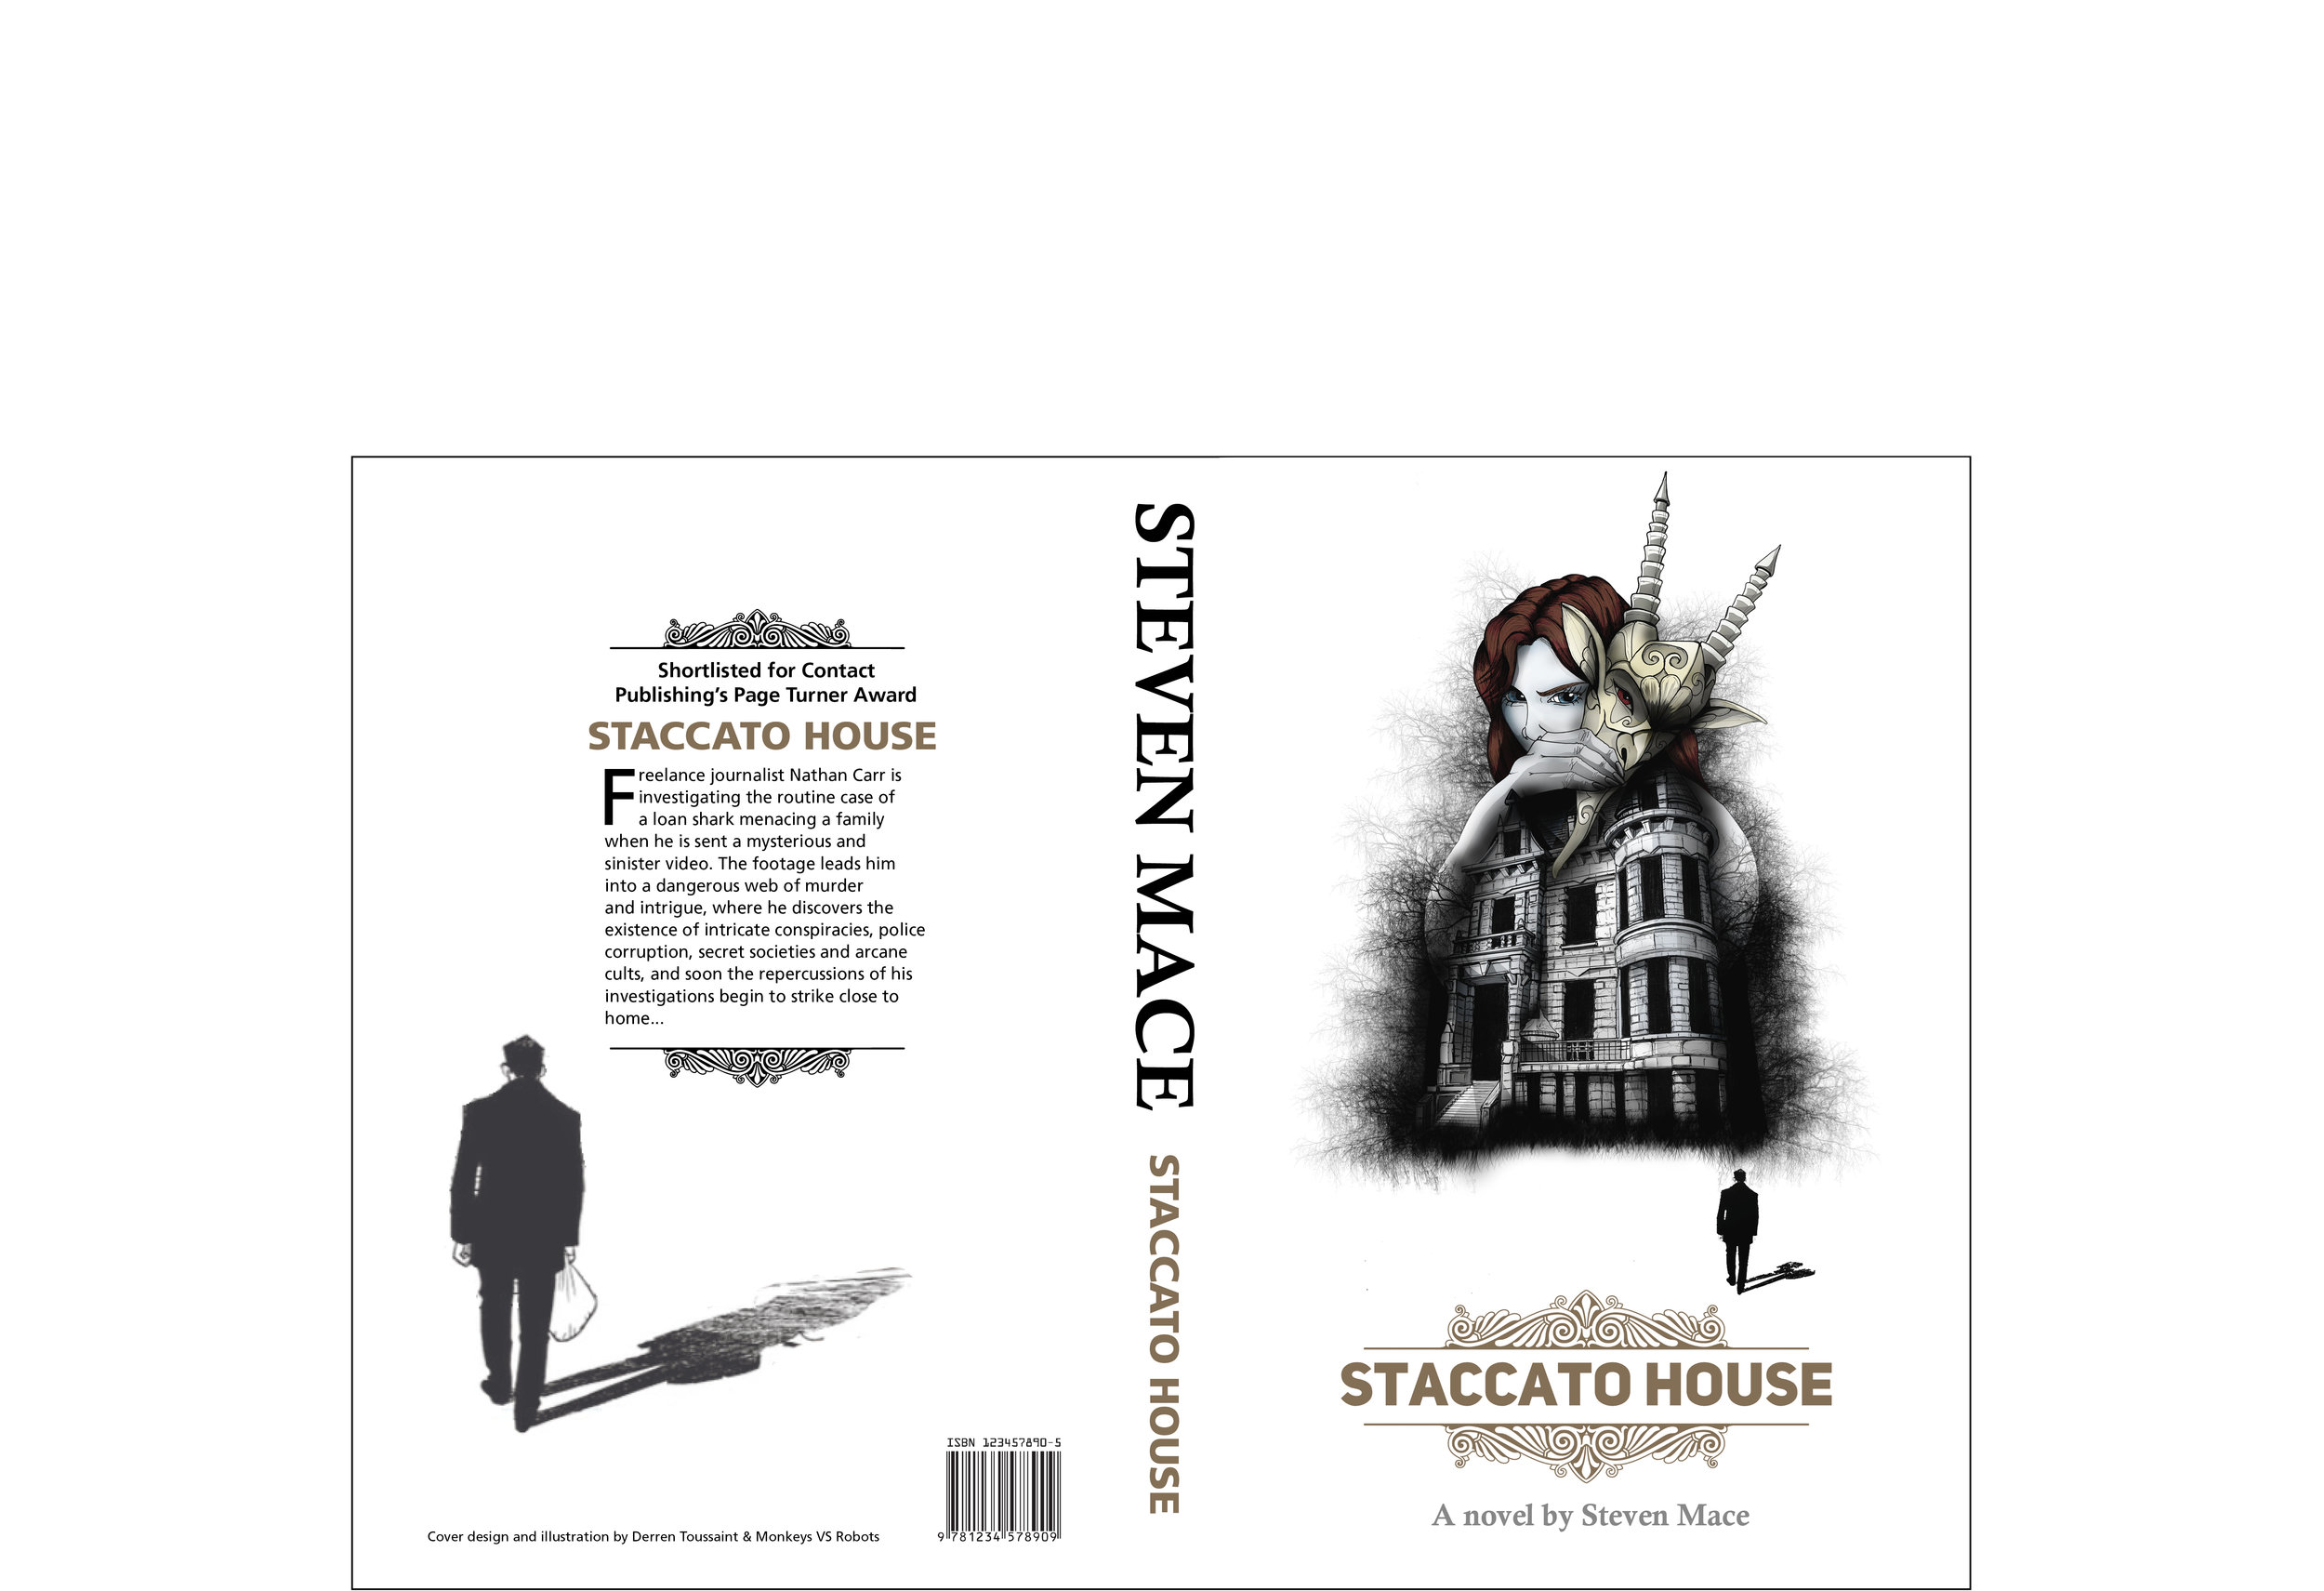 Staccato House WIP cover_back_spine 2 2.jpg